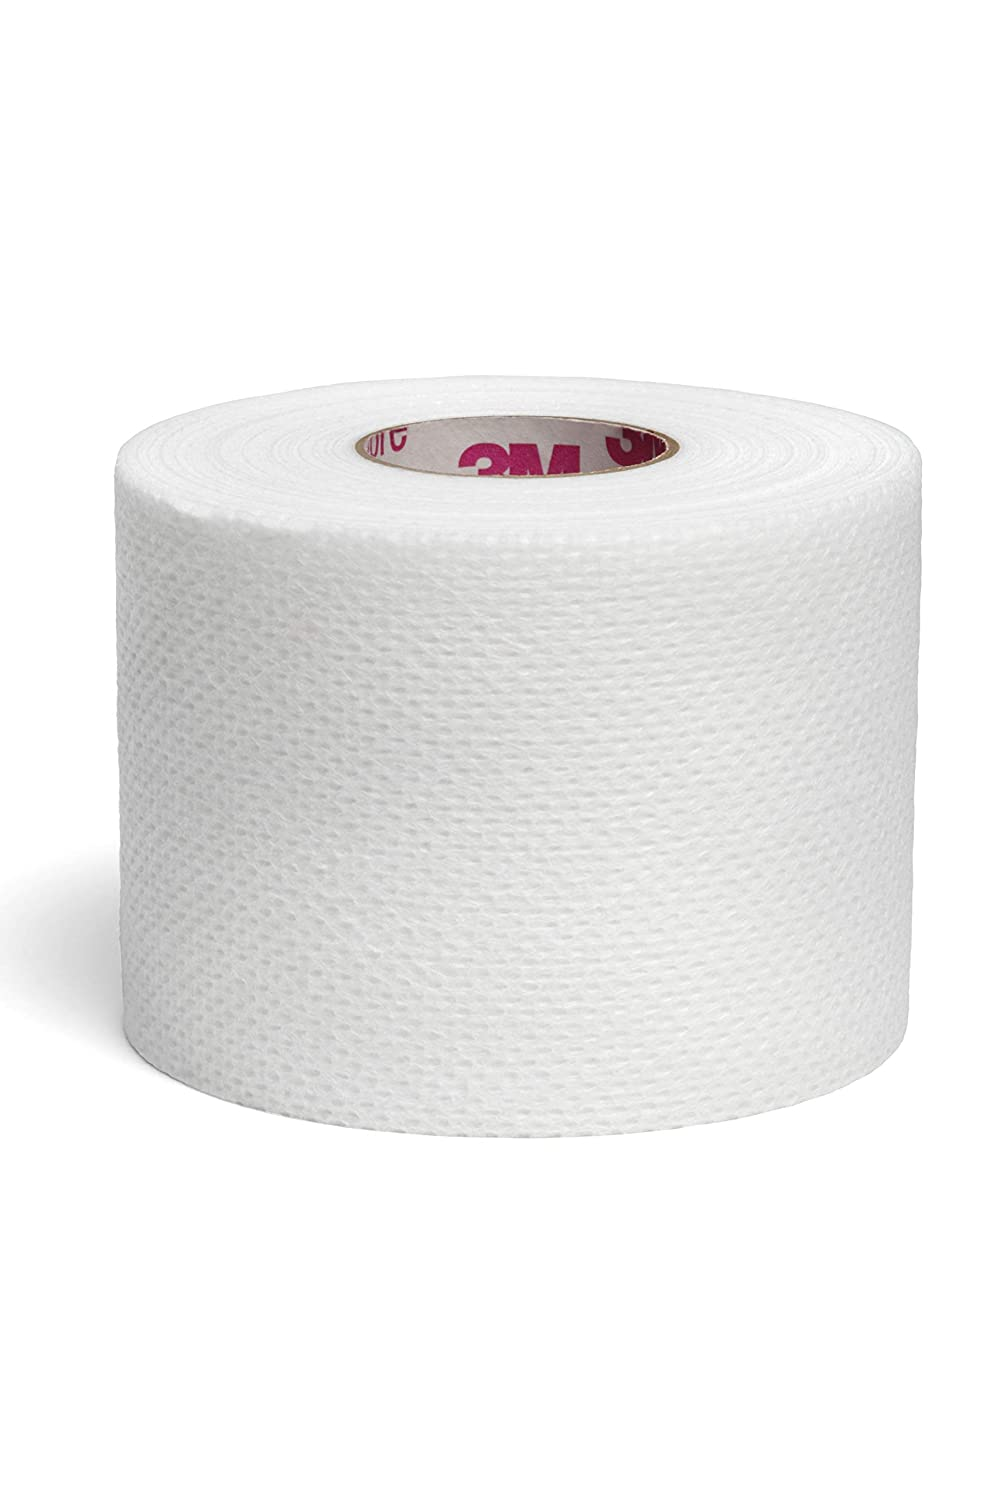 "Cloth Tape: 3M Medipore Medical Tape 2"" X 10 Yd Roll #2962-1/Roll by"